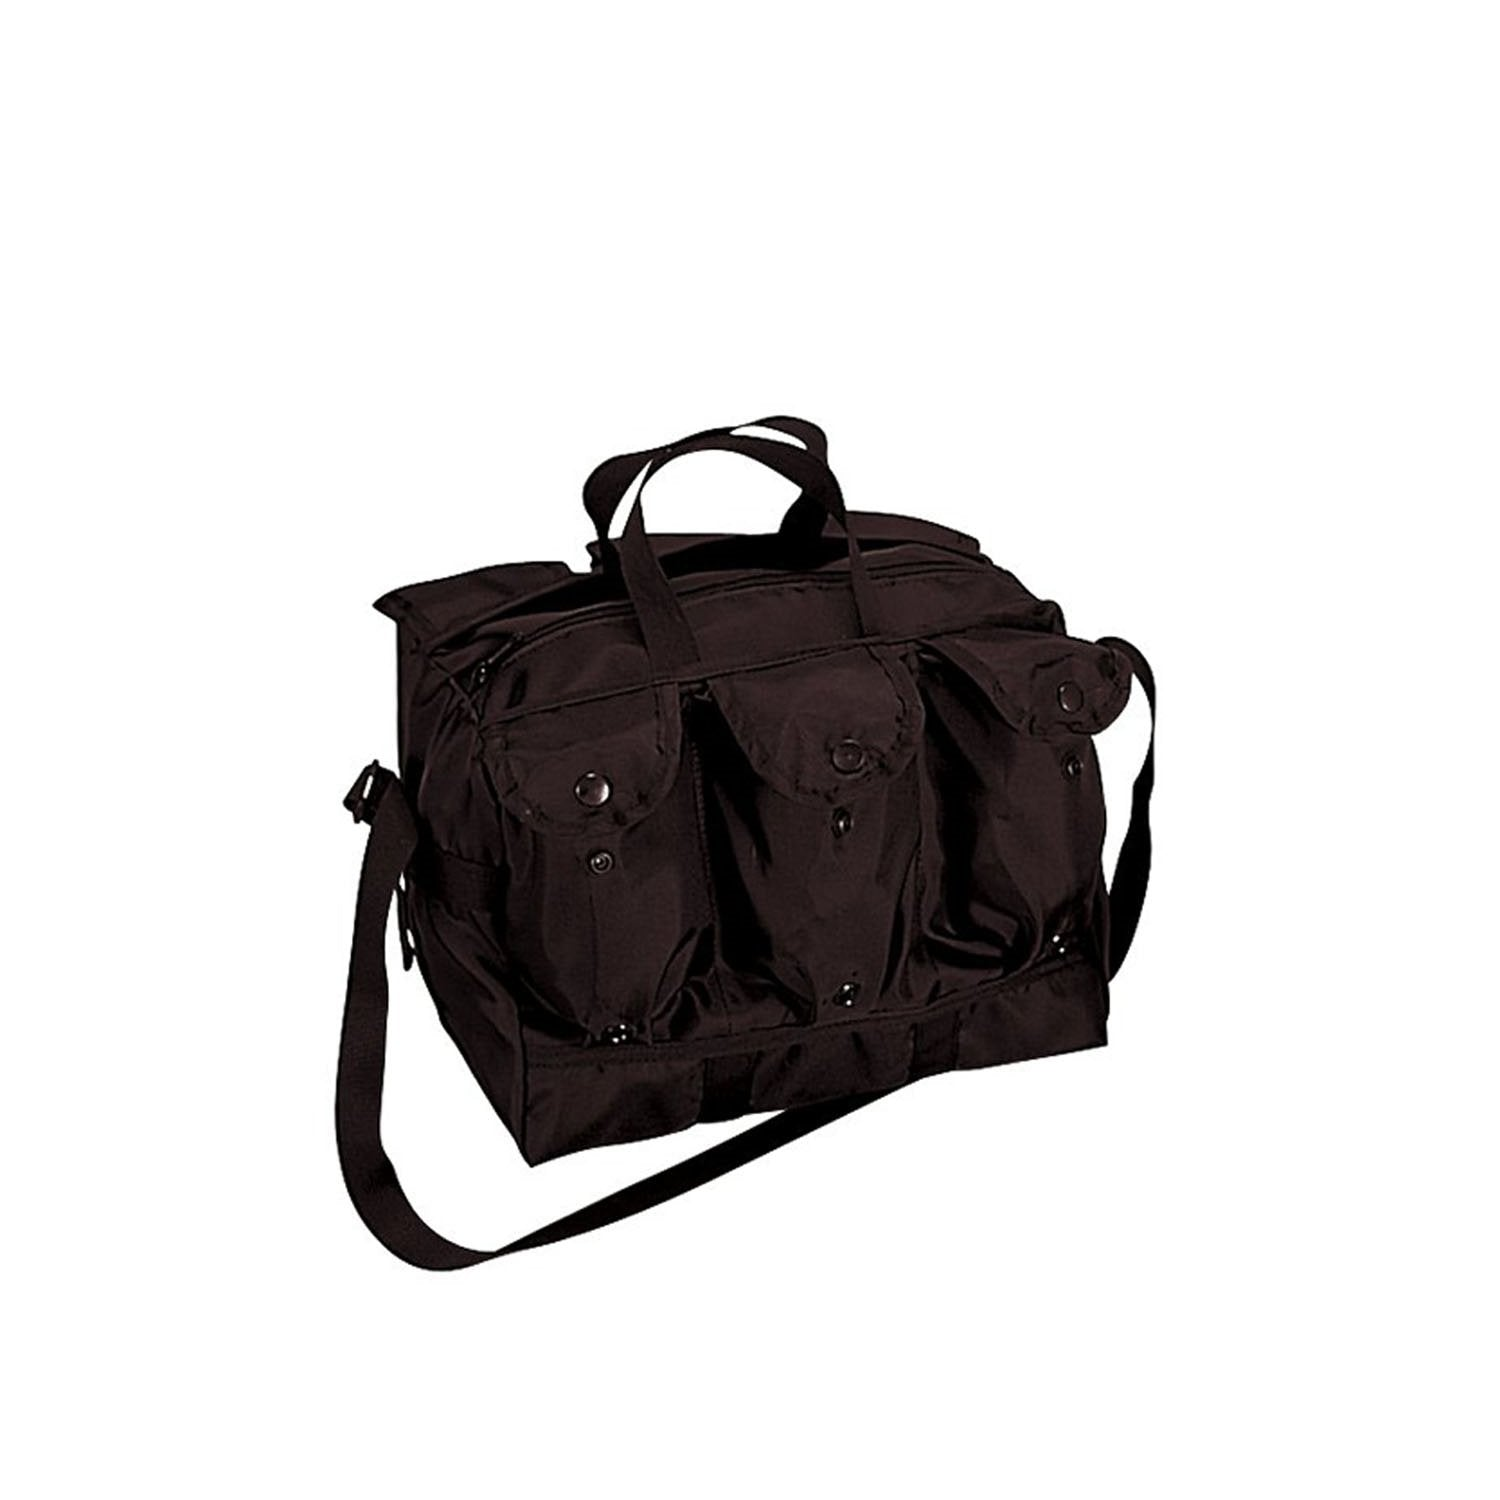 G.I. Type Heavy Weight Medical Equipment Mag Bag